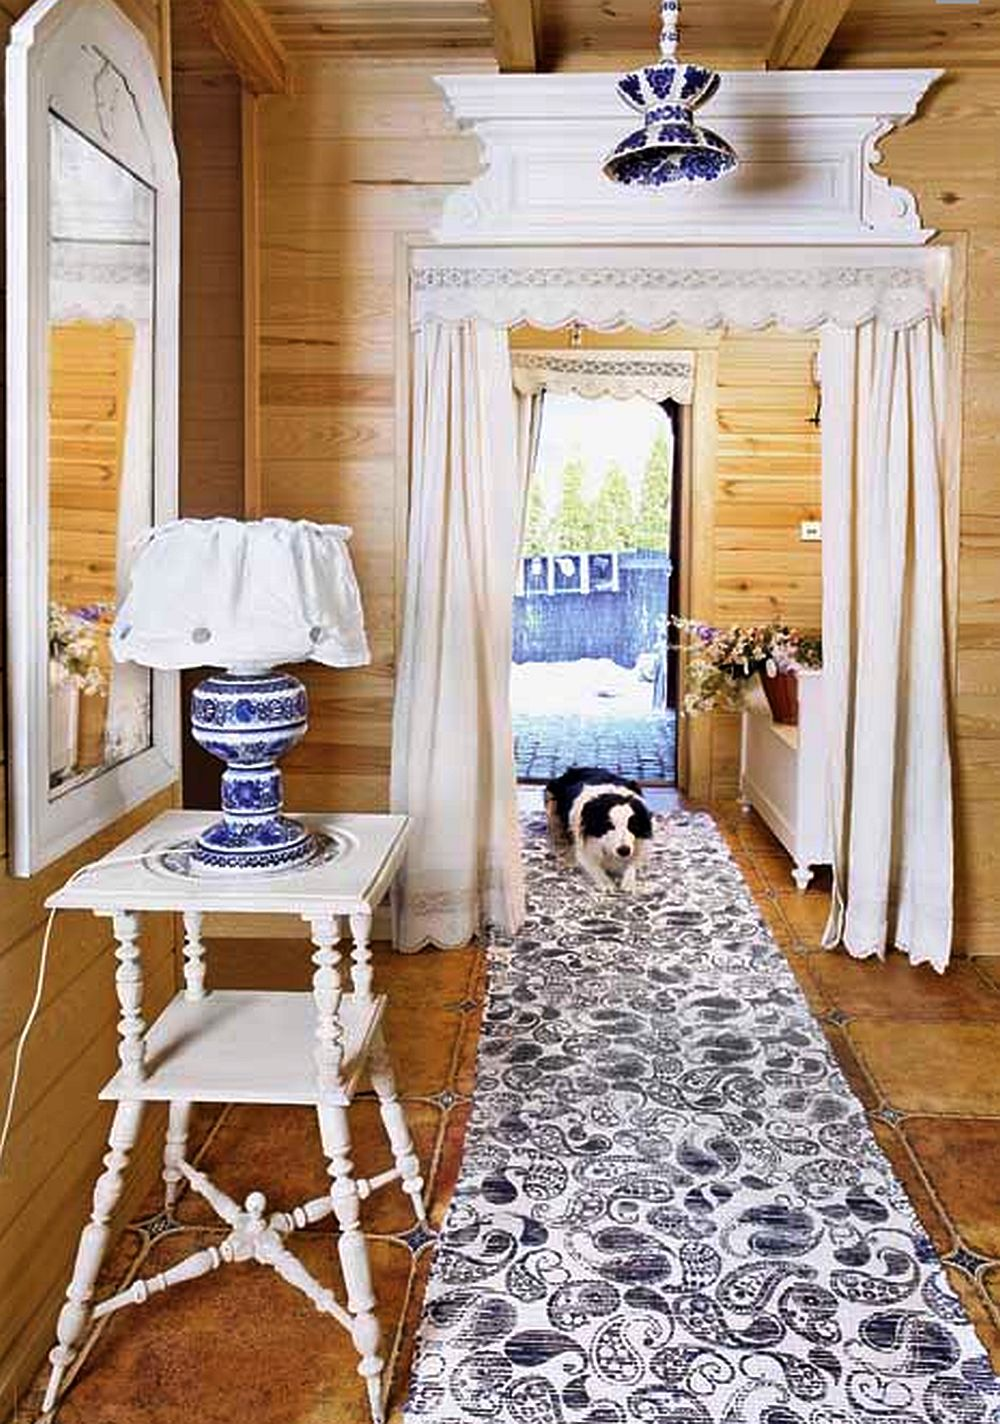 adelaparvu.com about rustic house in white and blue Photo Aneta Tryczynska(10)